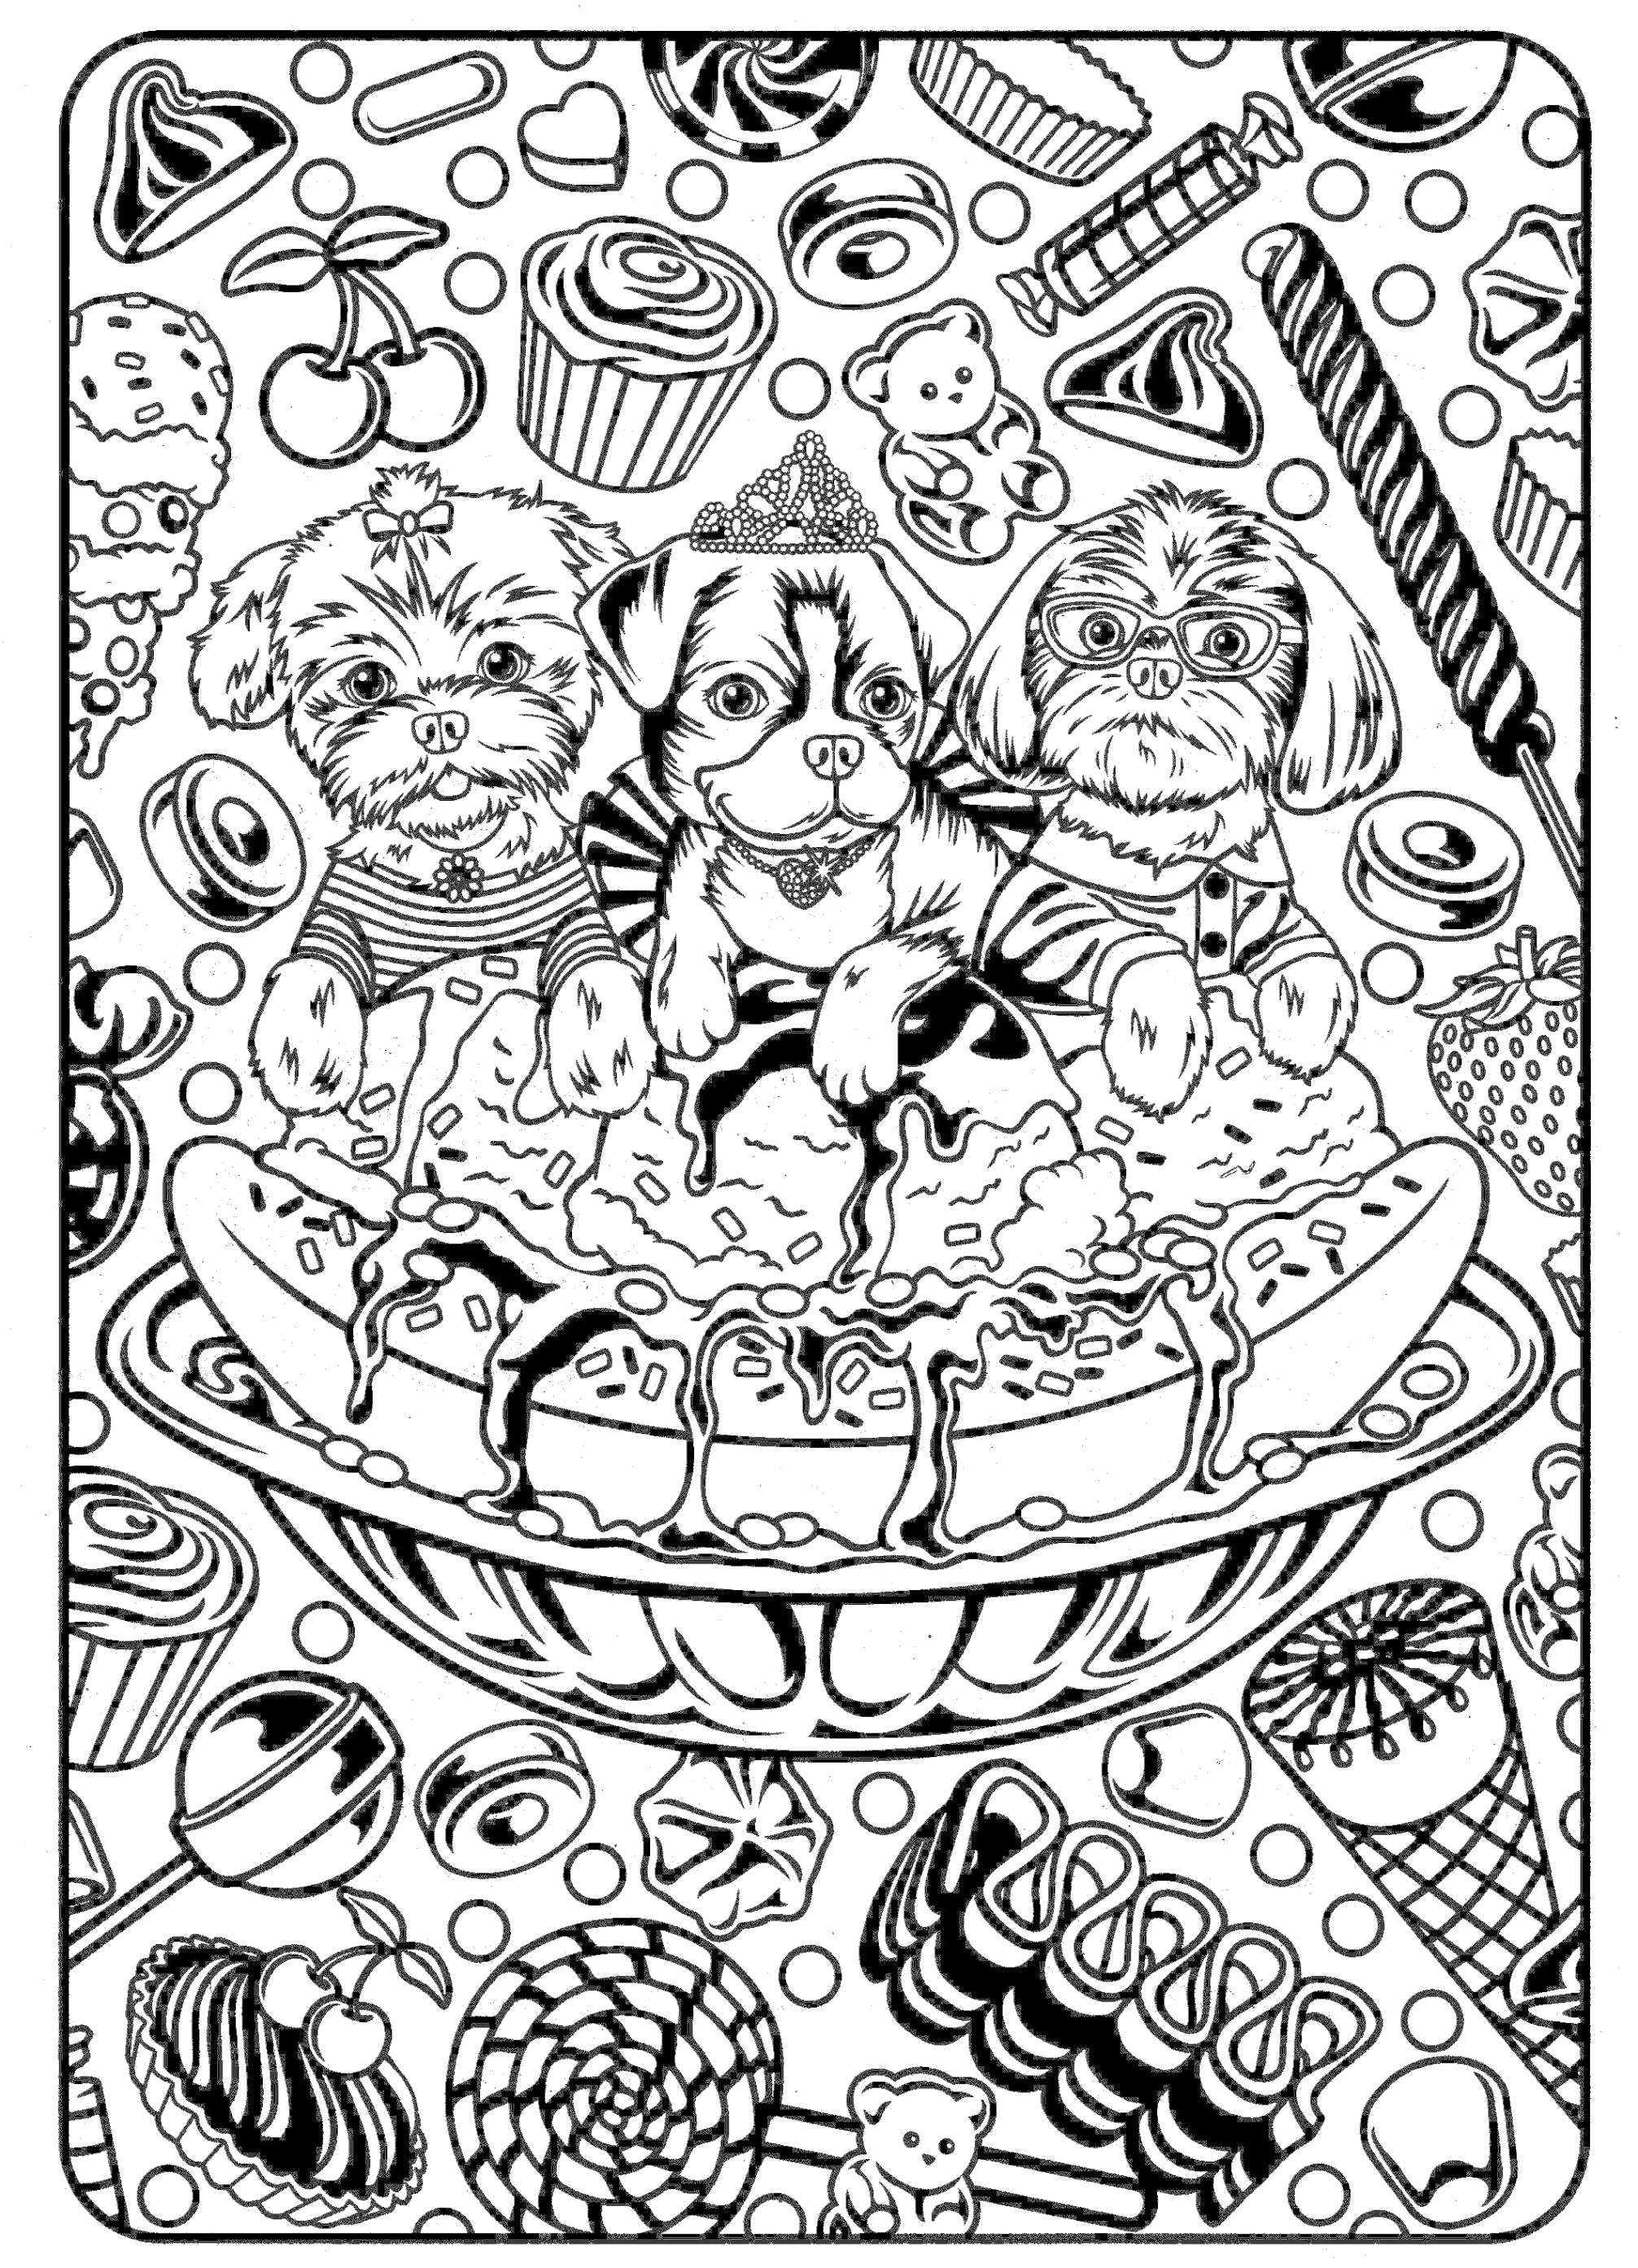 Merry Christmas Colouring Pages Printable With Fall Coloring Adults Best Of 50